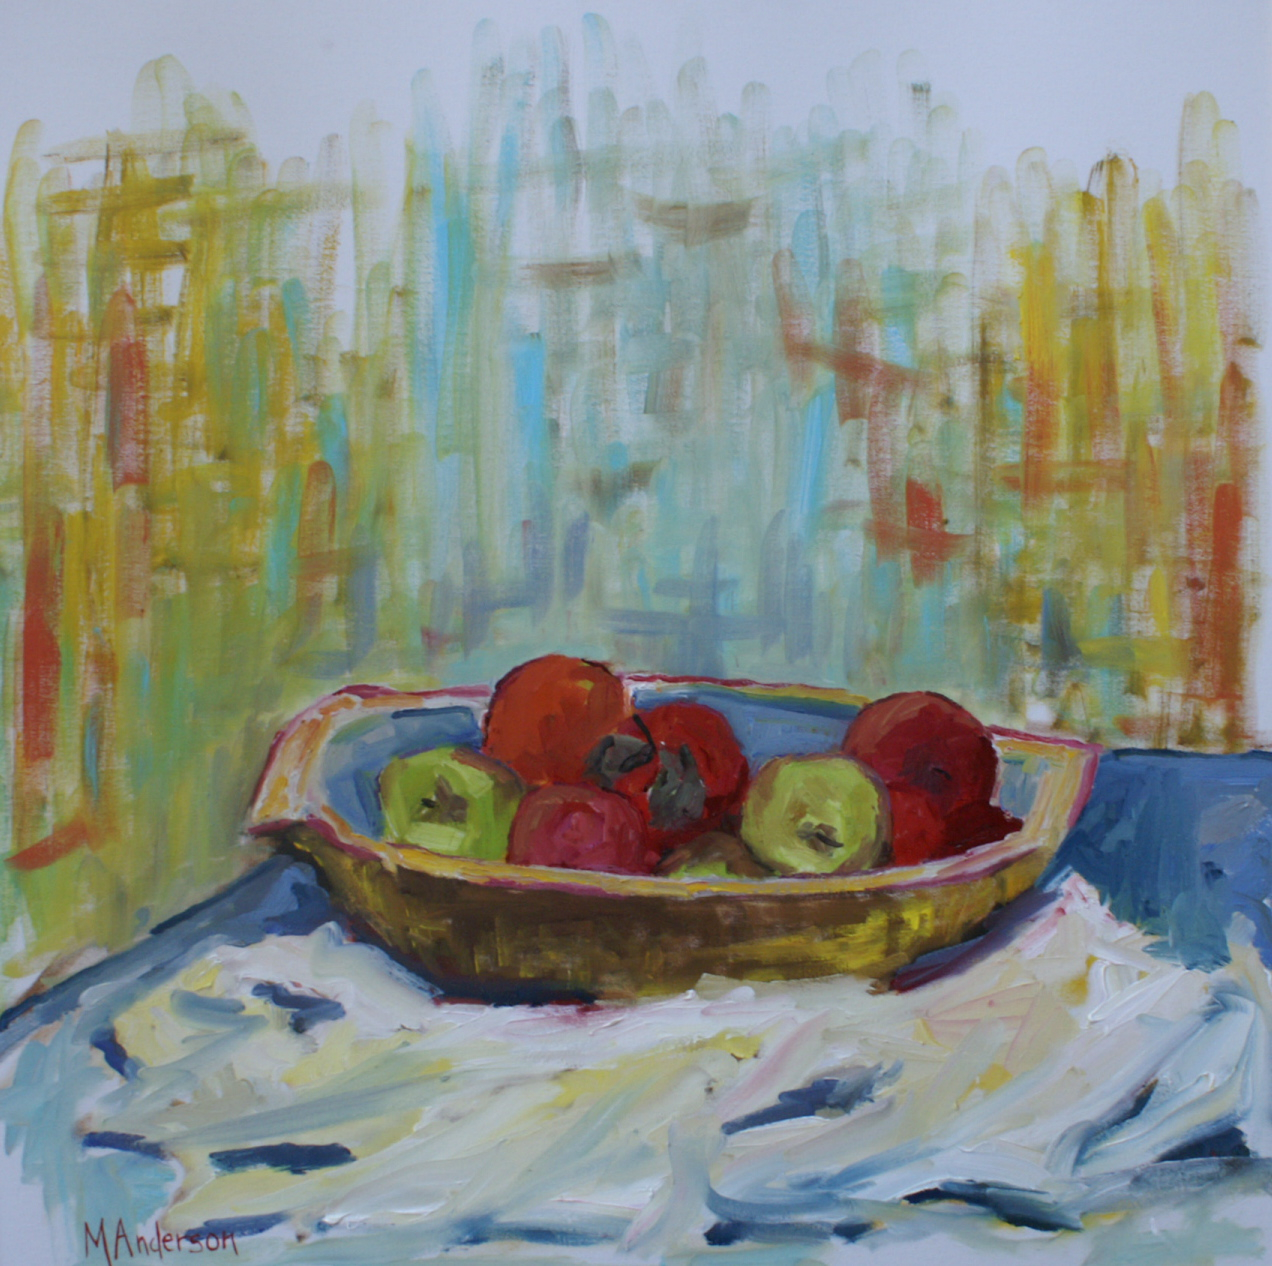 Assorted Fruit (30x30 Canvas) - Sold